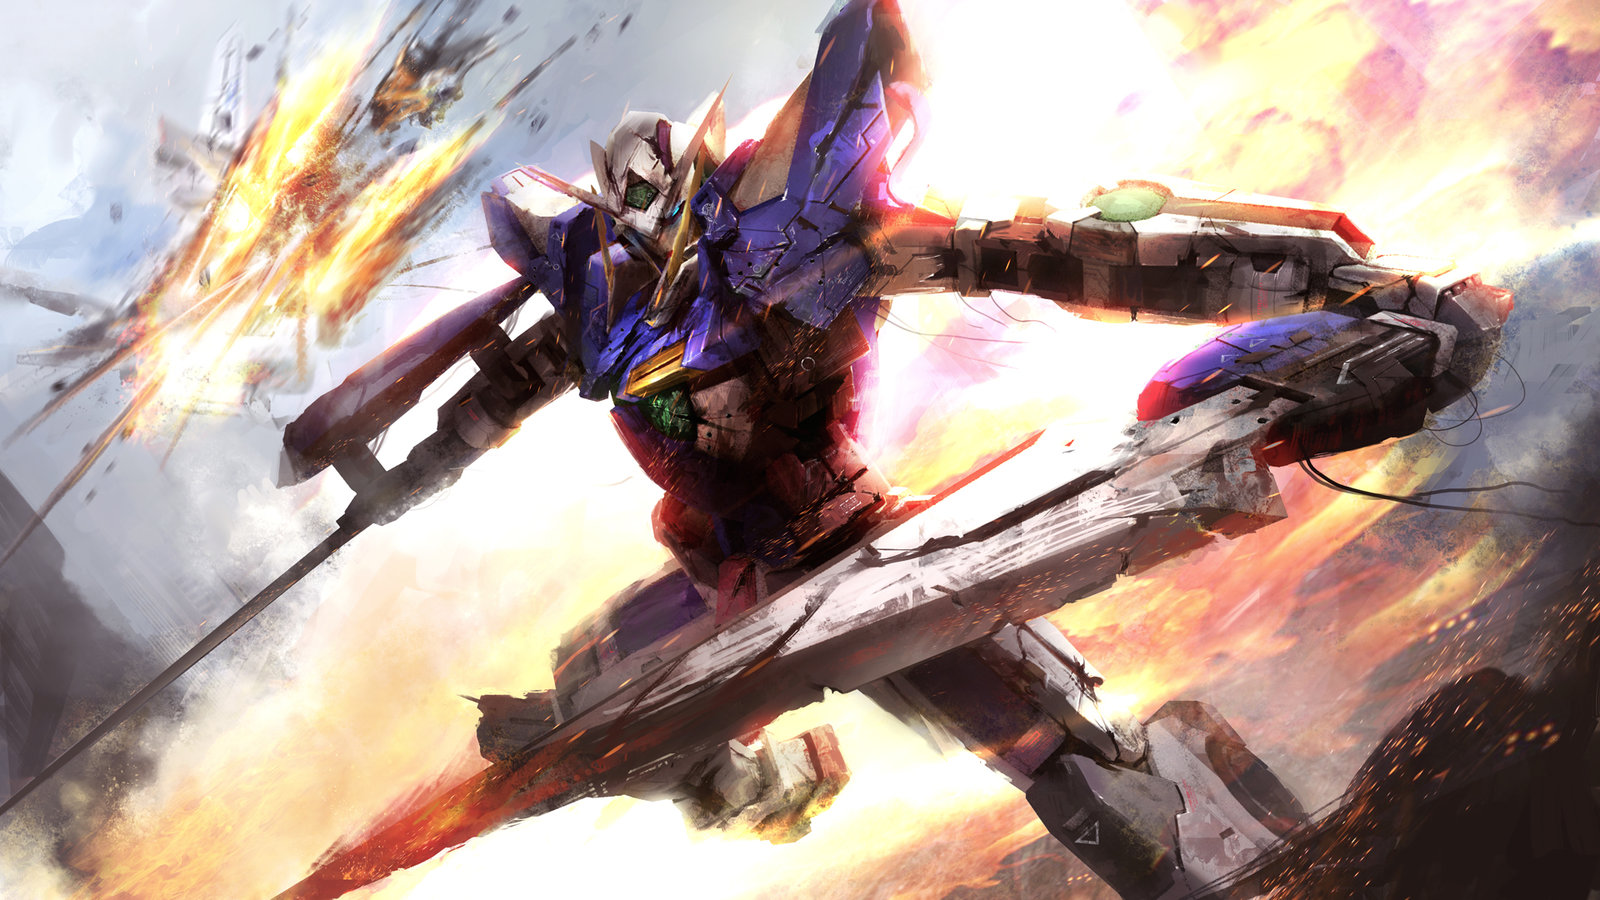 Gundam Exia exterminate the targets wallet by 1600x900